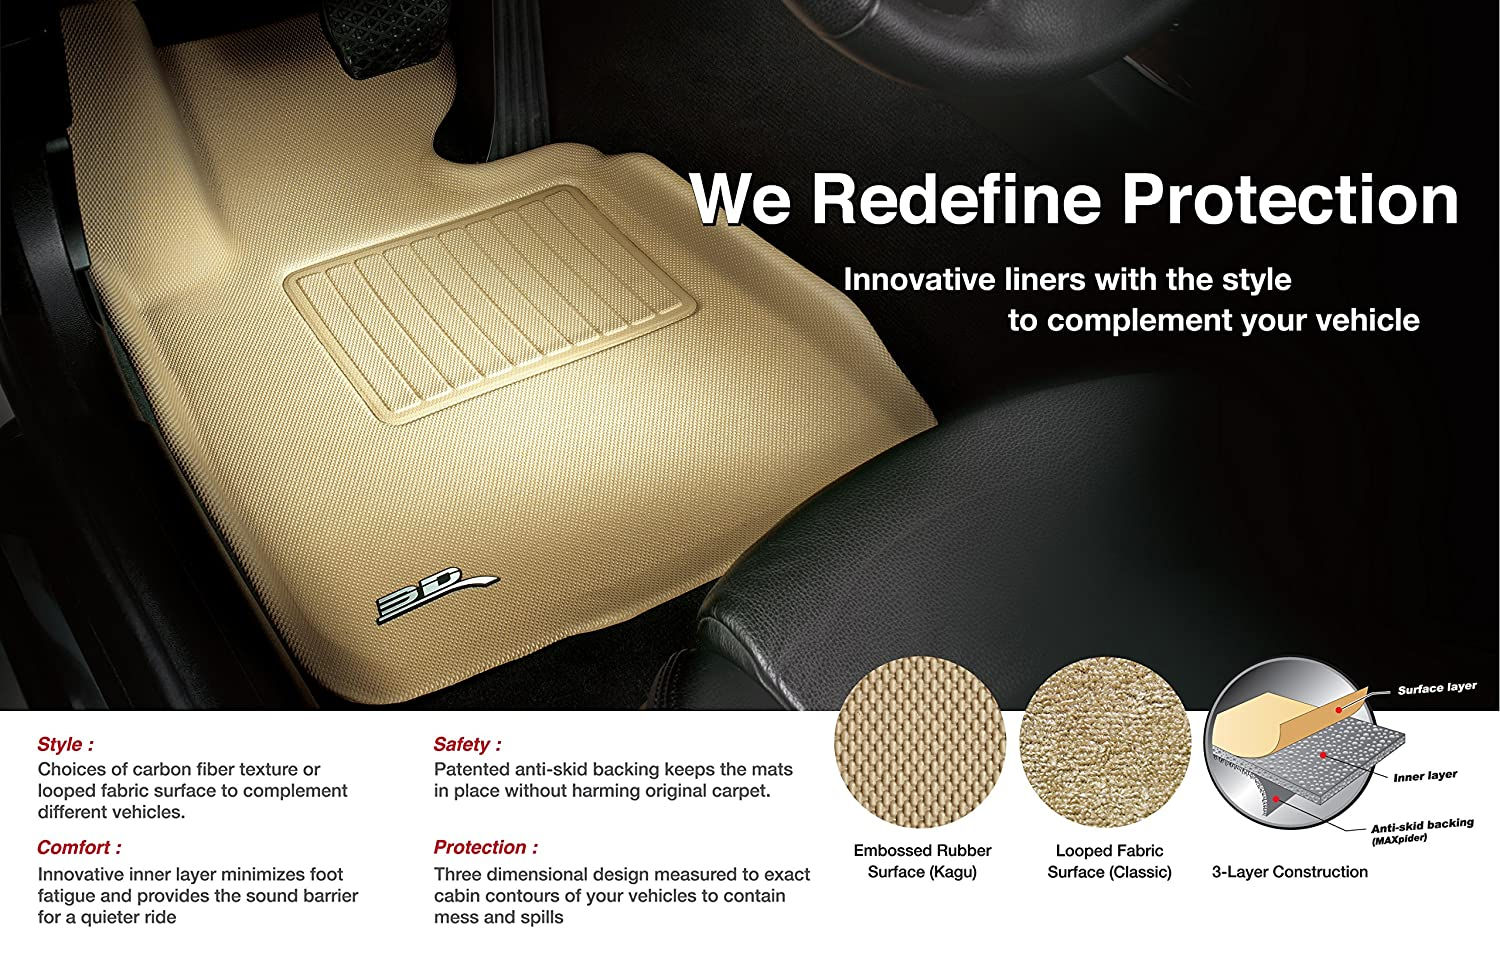 3D MAXpider Third Row Custom Fit All-Weather Floor Mat for Select Volvo XC90 Models Kagu Rubber L1VV02031502 Tan